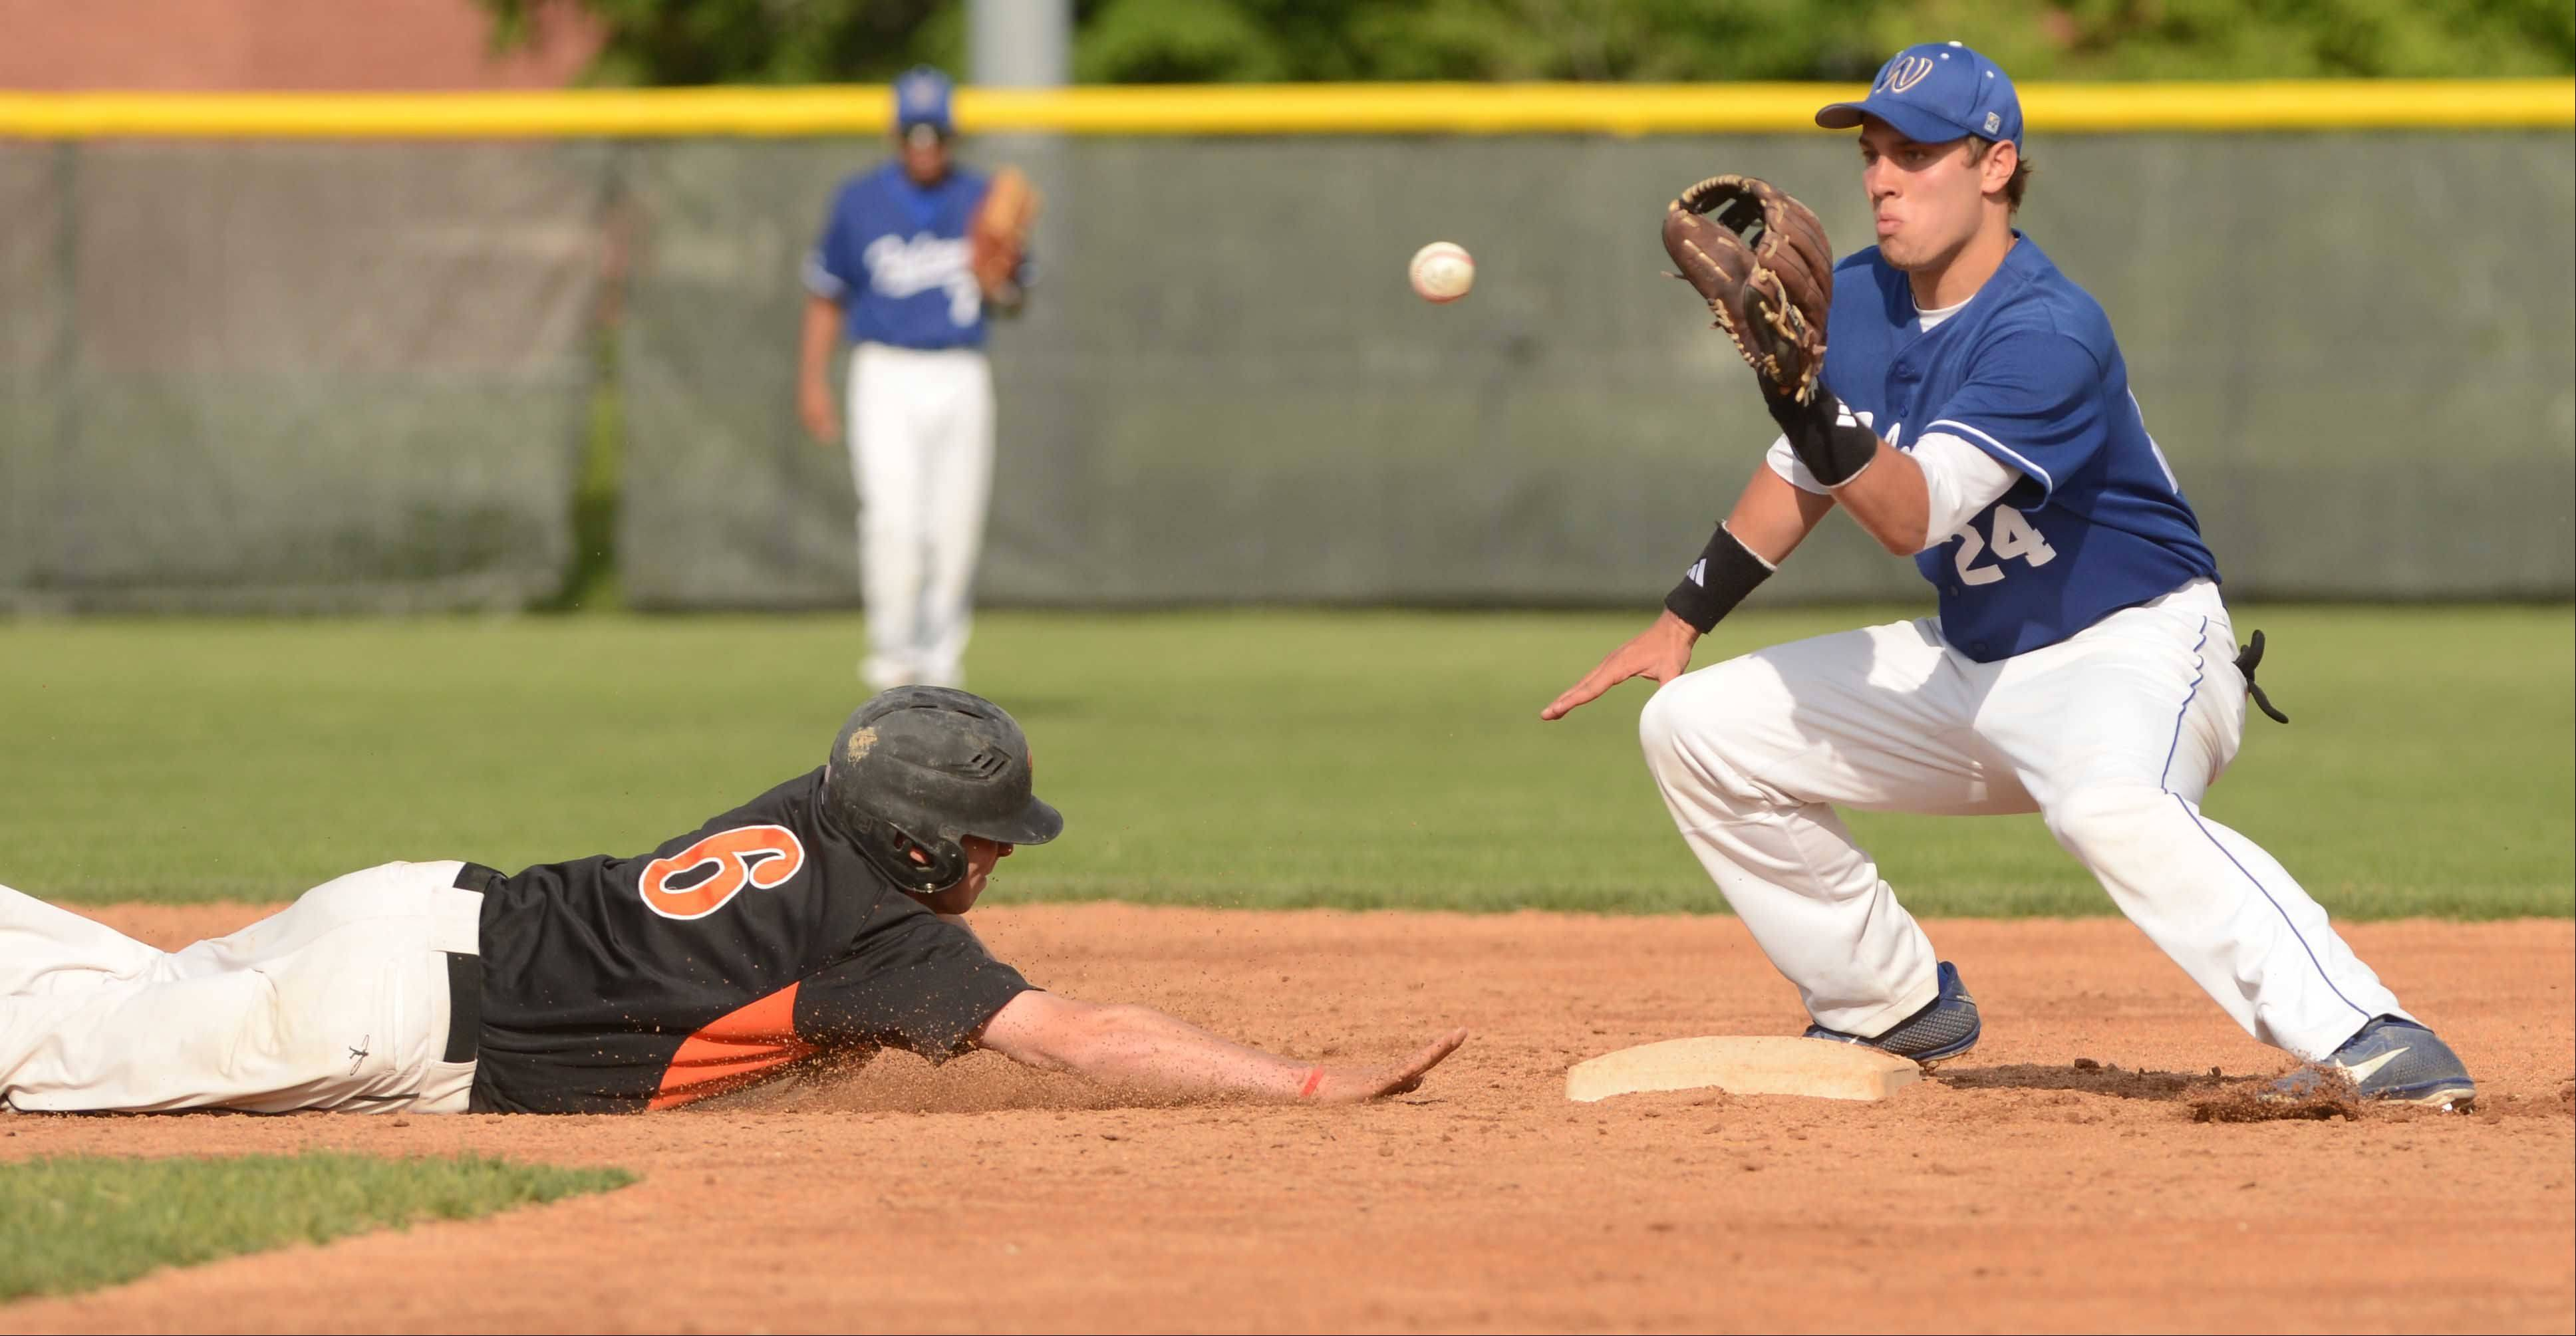 Ben Bach of Wheaton Warrenville South reaches for second while John Peltz of Wheaton North catches the ball. He was safe. This took place during the Wheaton Warrenville South vs. Wheaton North baseball game Wednesday.